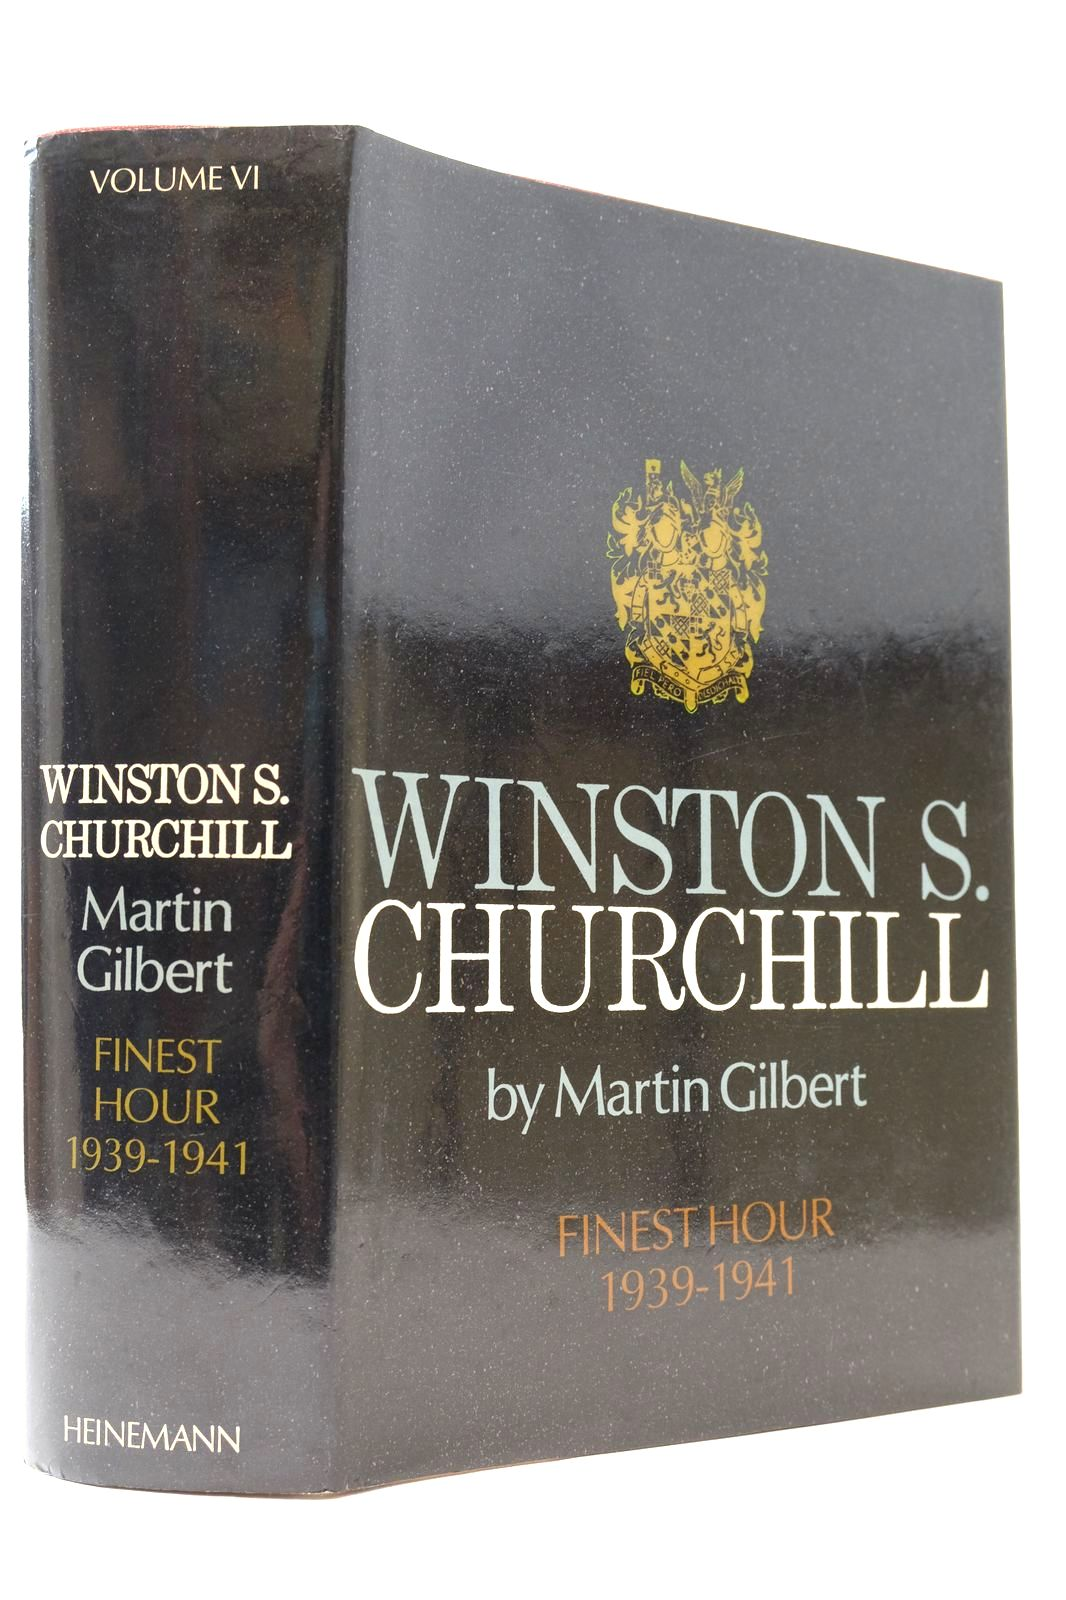 Photo of WINSTON S. CHURCHILL VOLUME VI FINEST HOUR 1939-1941 written by Gilbert, Martin published by Heinemann (STOCK CODE: 2132688)  for sale by Stella & Rose's Books